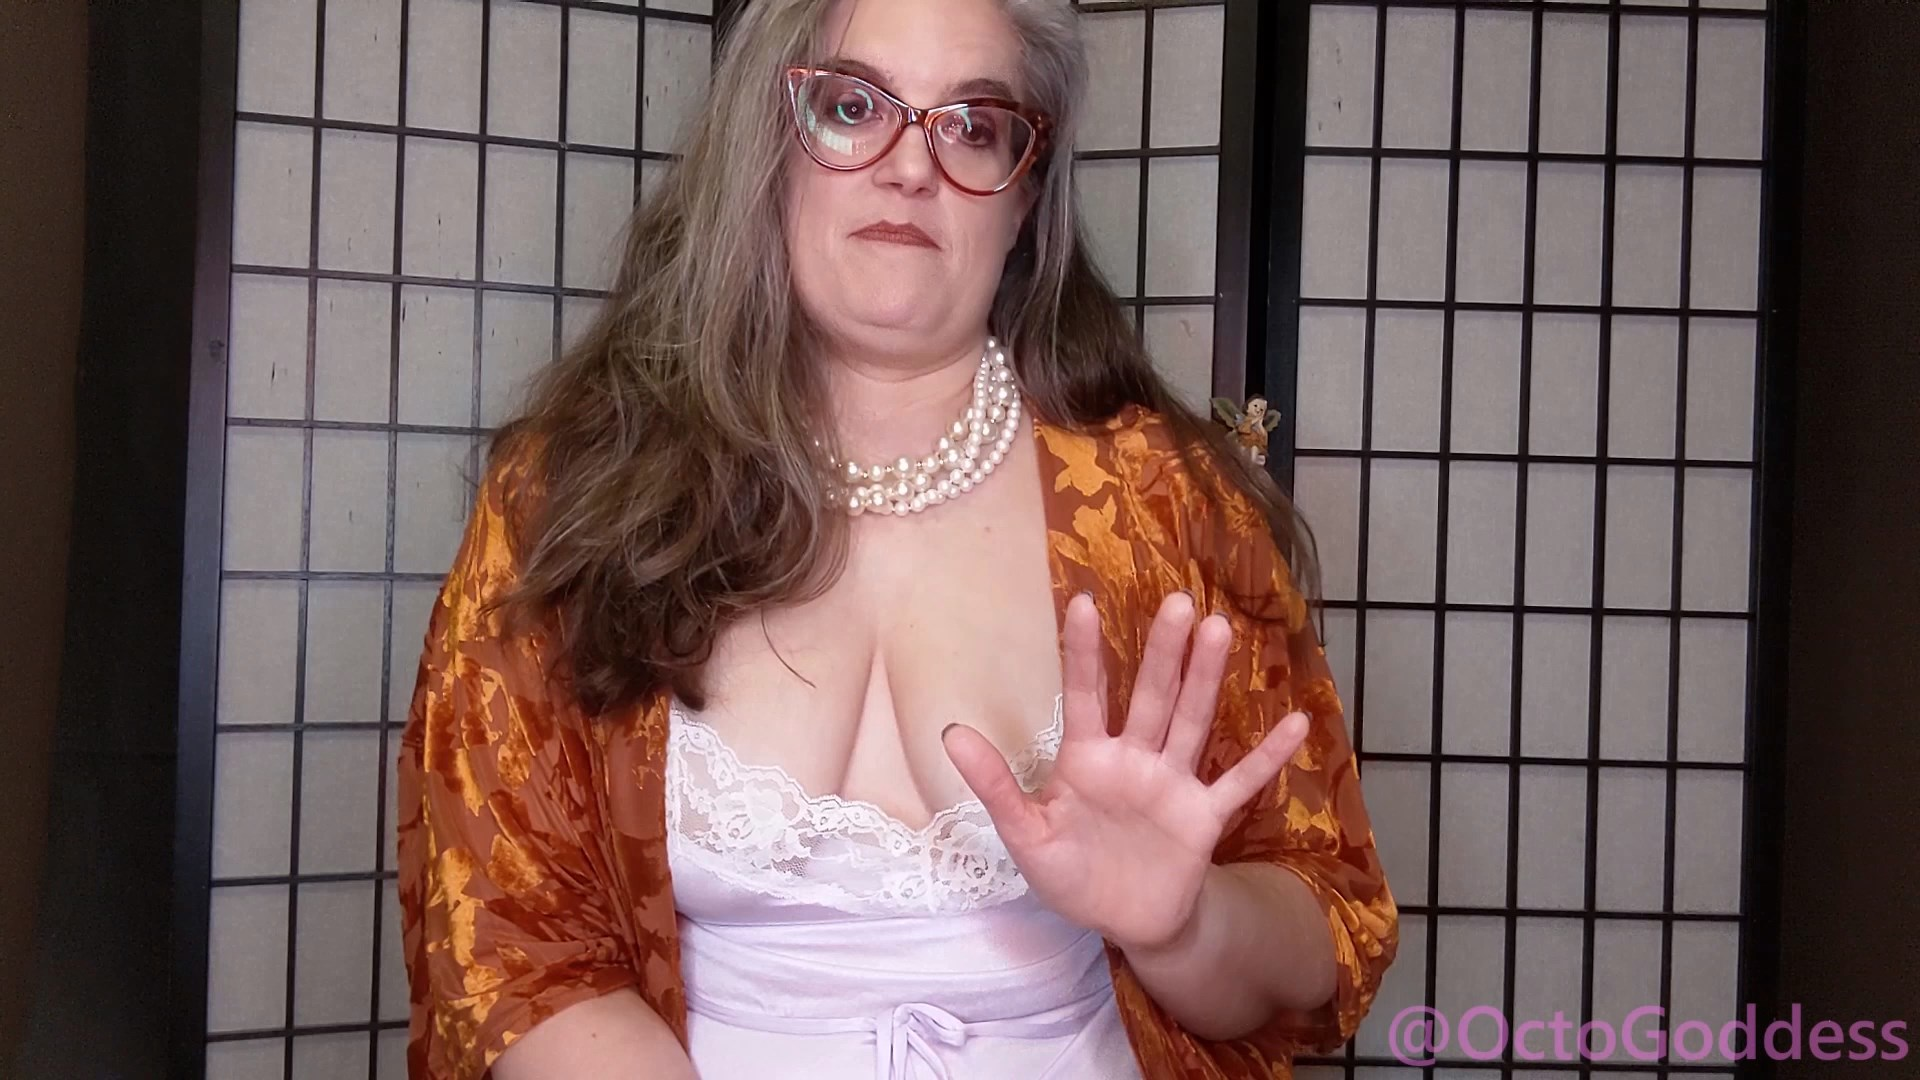 OctoGoddess - Mommy Cuckolding SPH JOI MILF